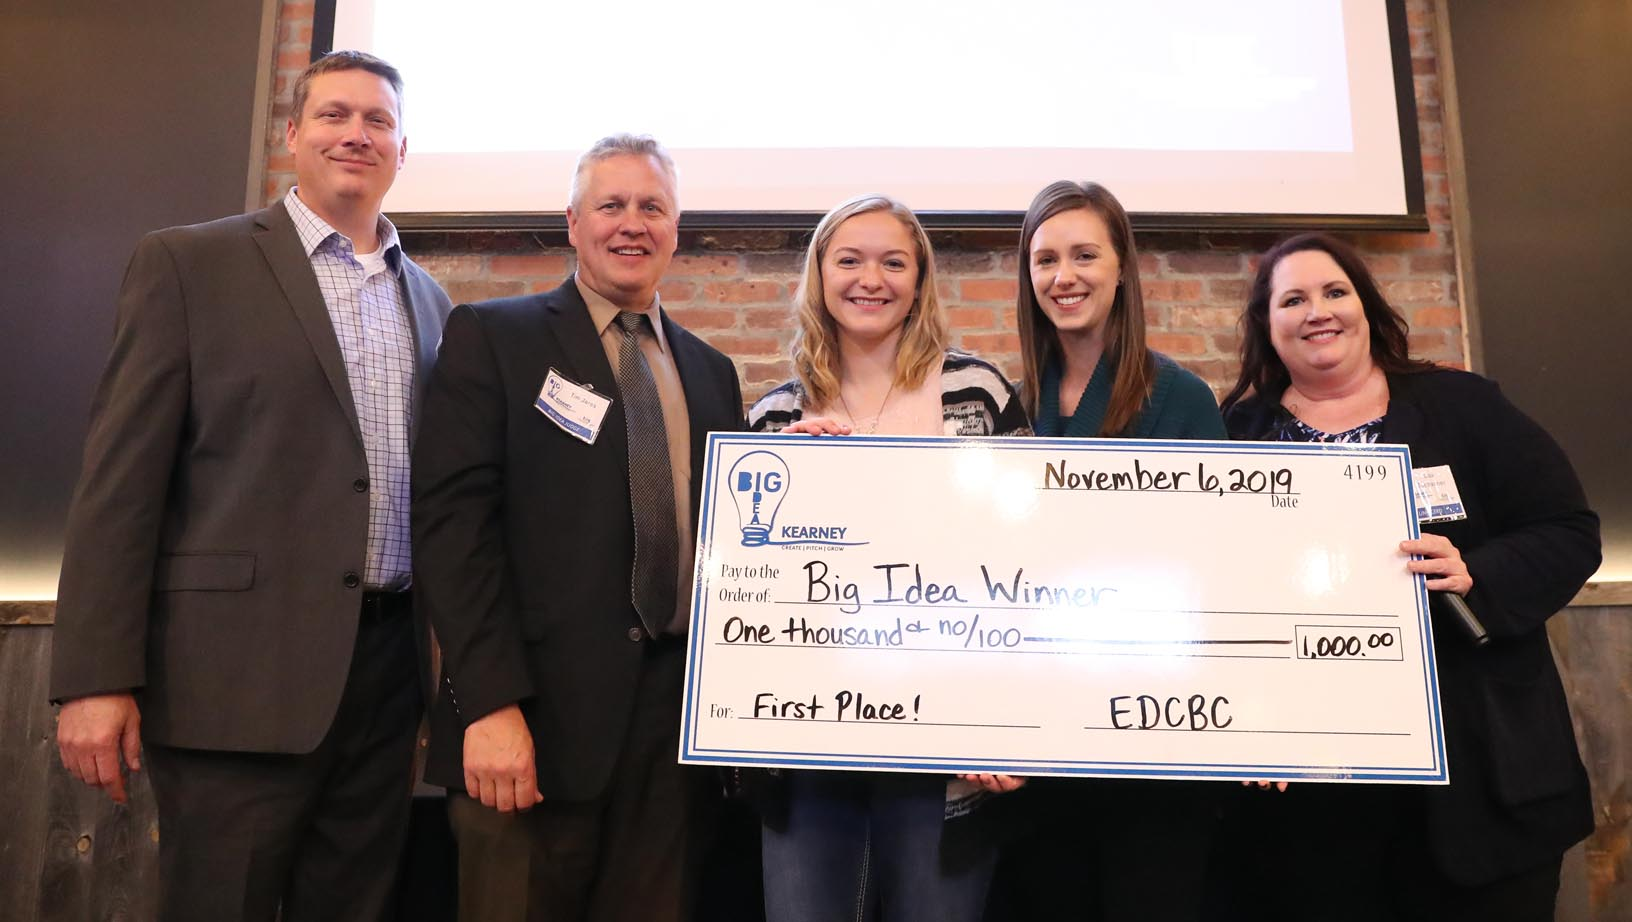 UNK student Nicole Mittman, center, pitched her glow-in-the-dark paintings to win the college division during last year's Big Idea Kearney competition. This year's business contest, Big Idea UNK, will be conducted completely online and it's open only to current UNK students.